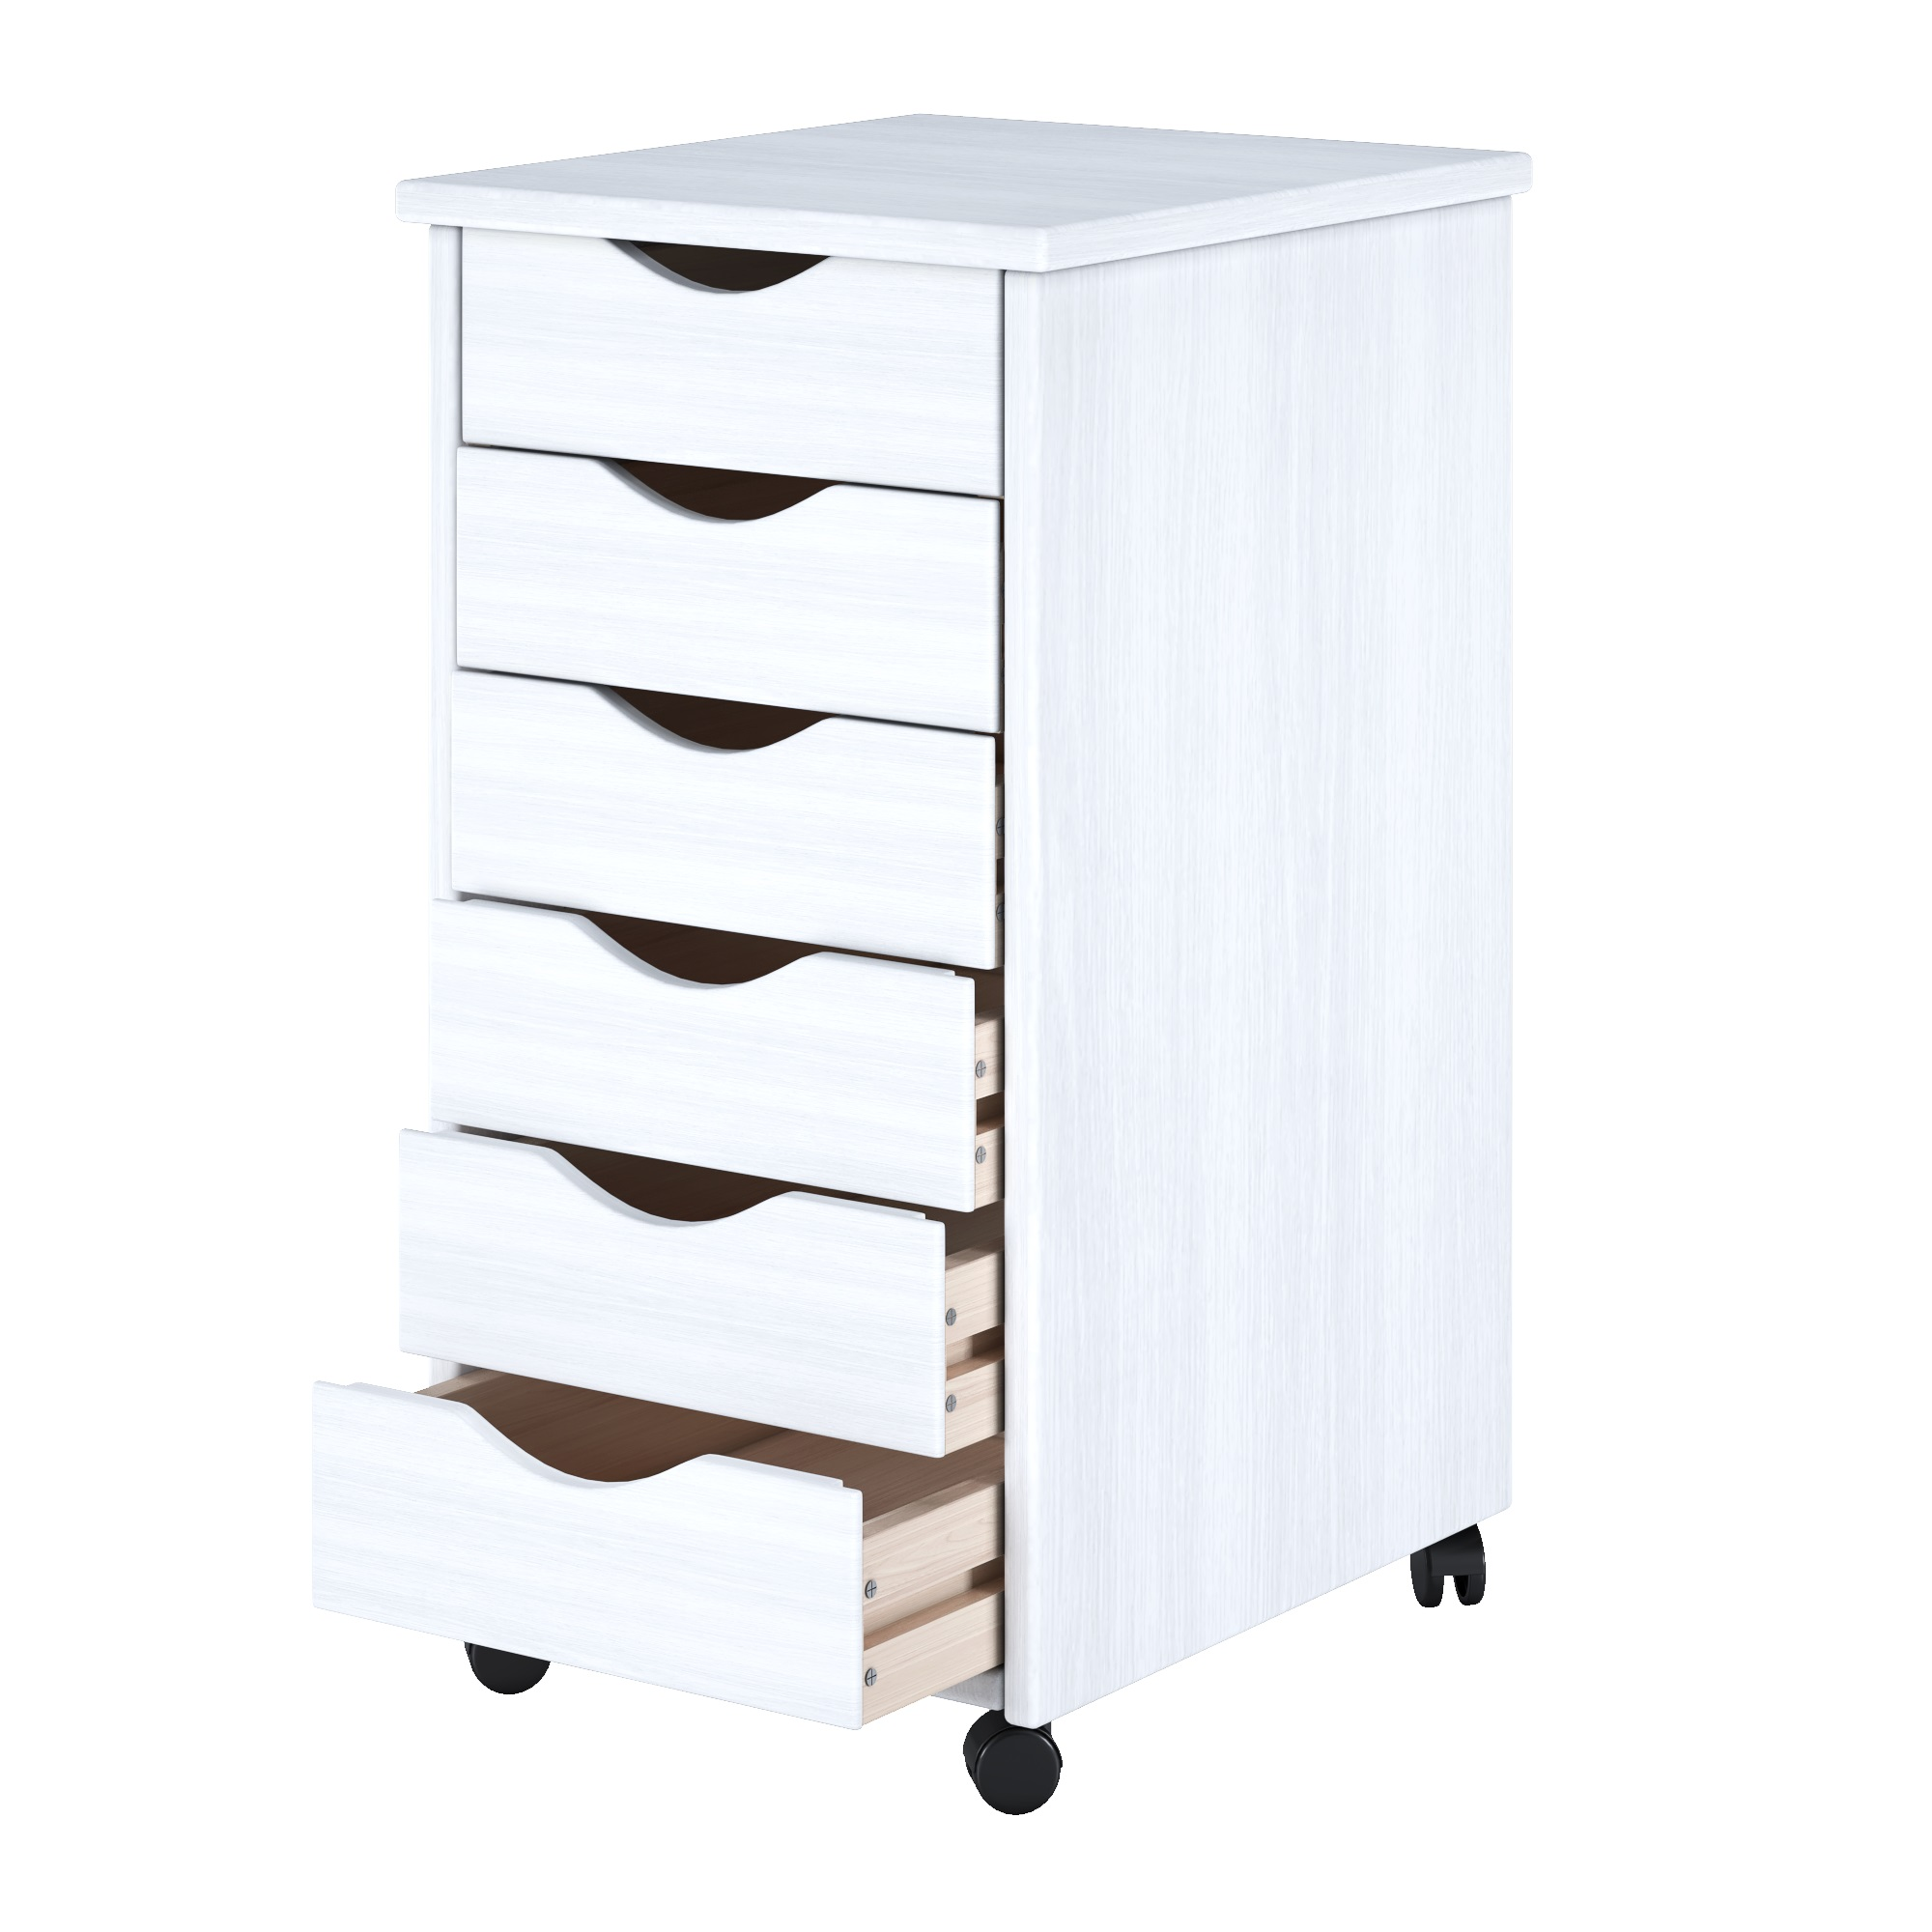 6 Drawer Solid Wood Roll Cart White - Adeptus 10018